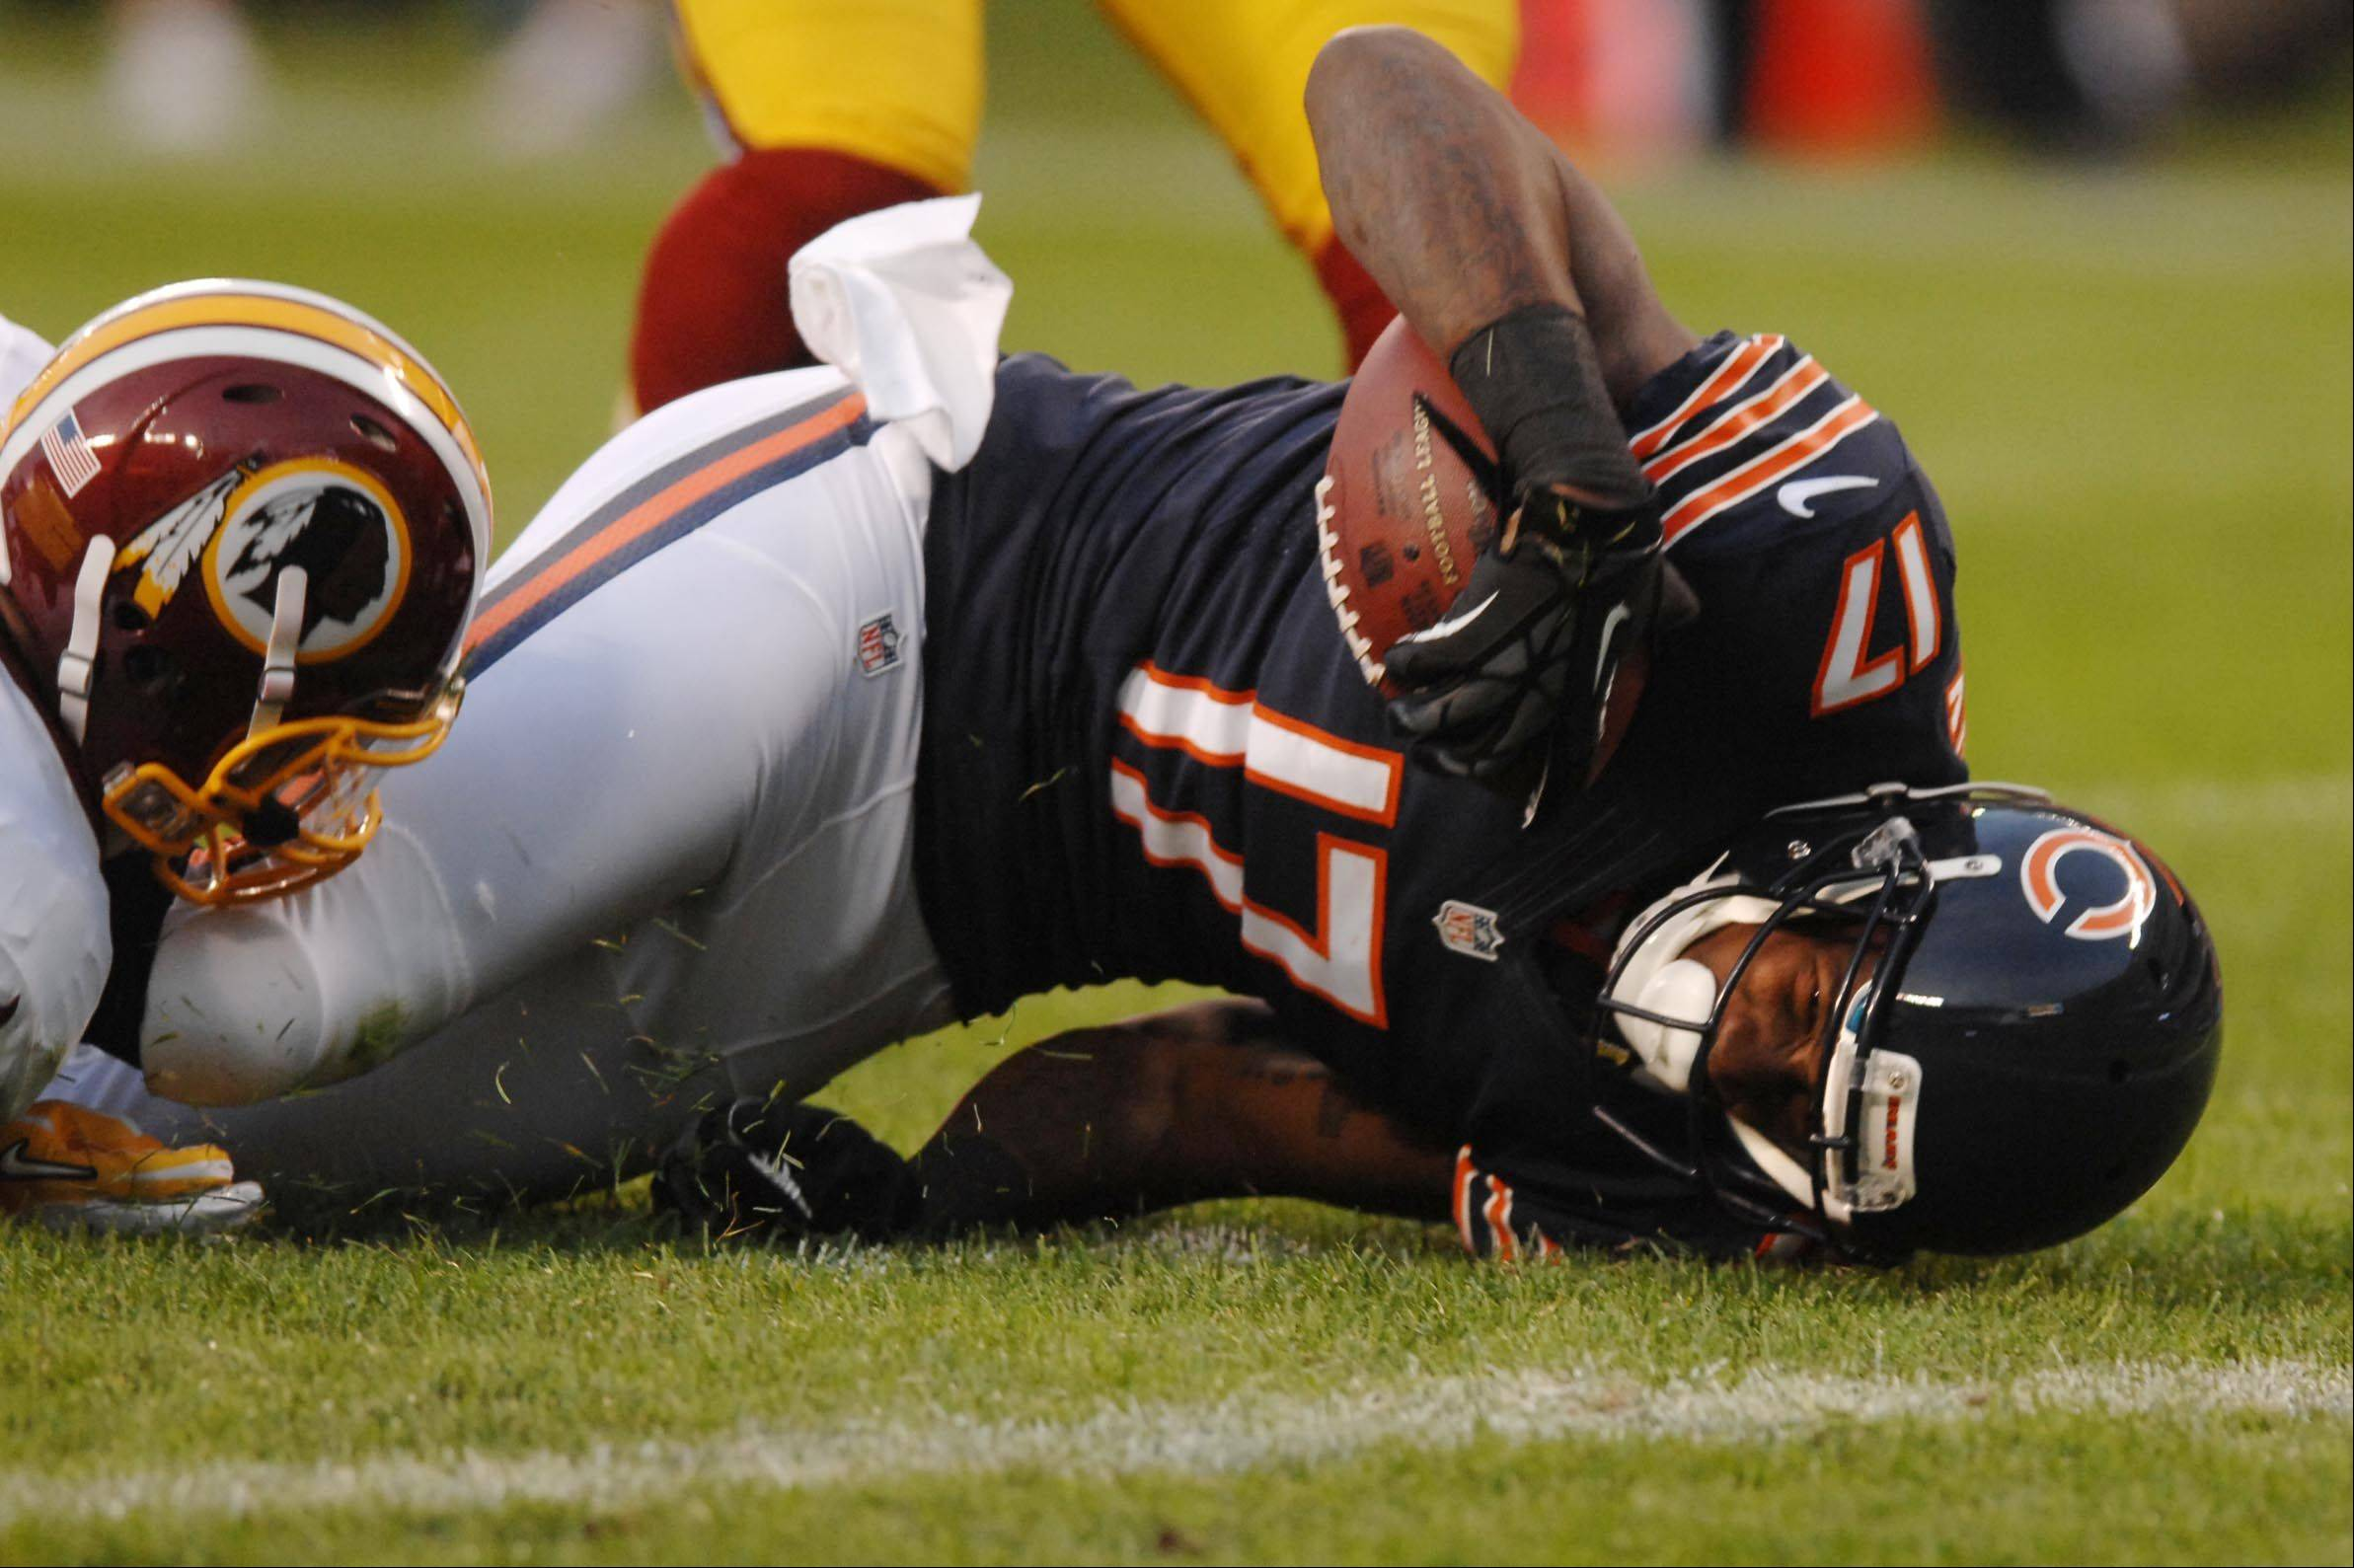 Chicago Bears wide receiver Alshon Jeffery is stopped short of the goal line Saturday against the Washington Redskins in the second preseason game at Soldier Field in Chicago. Teammate Michael Bush scored on the next play.